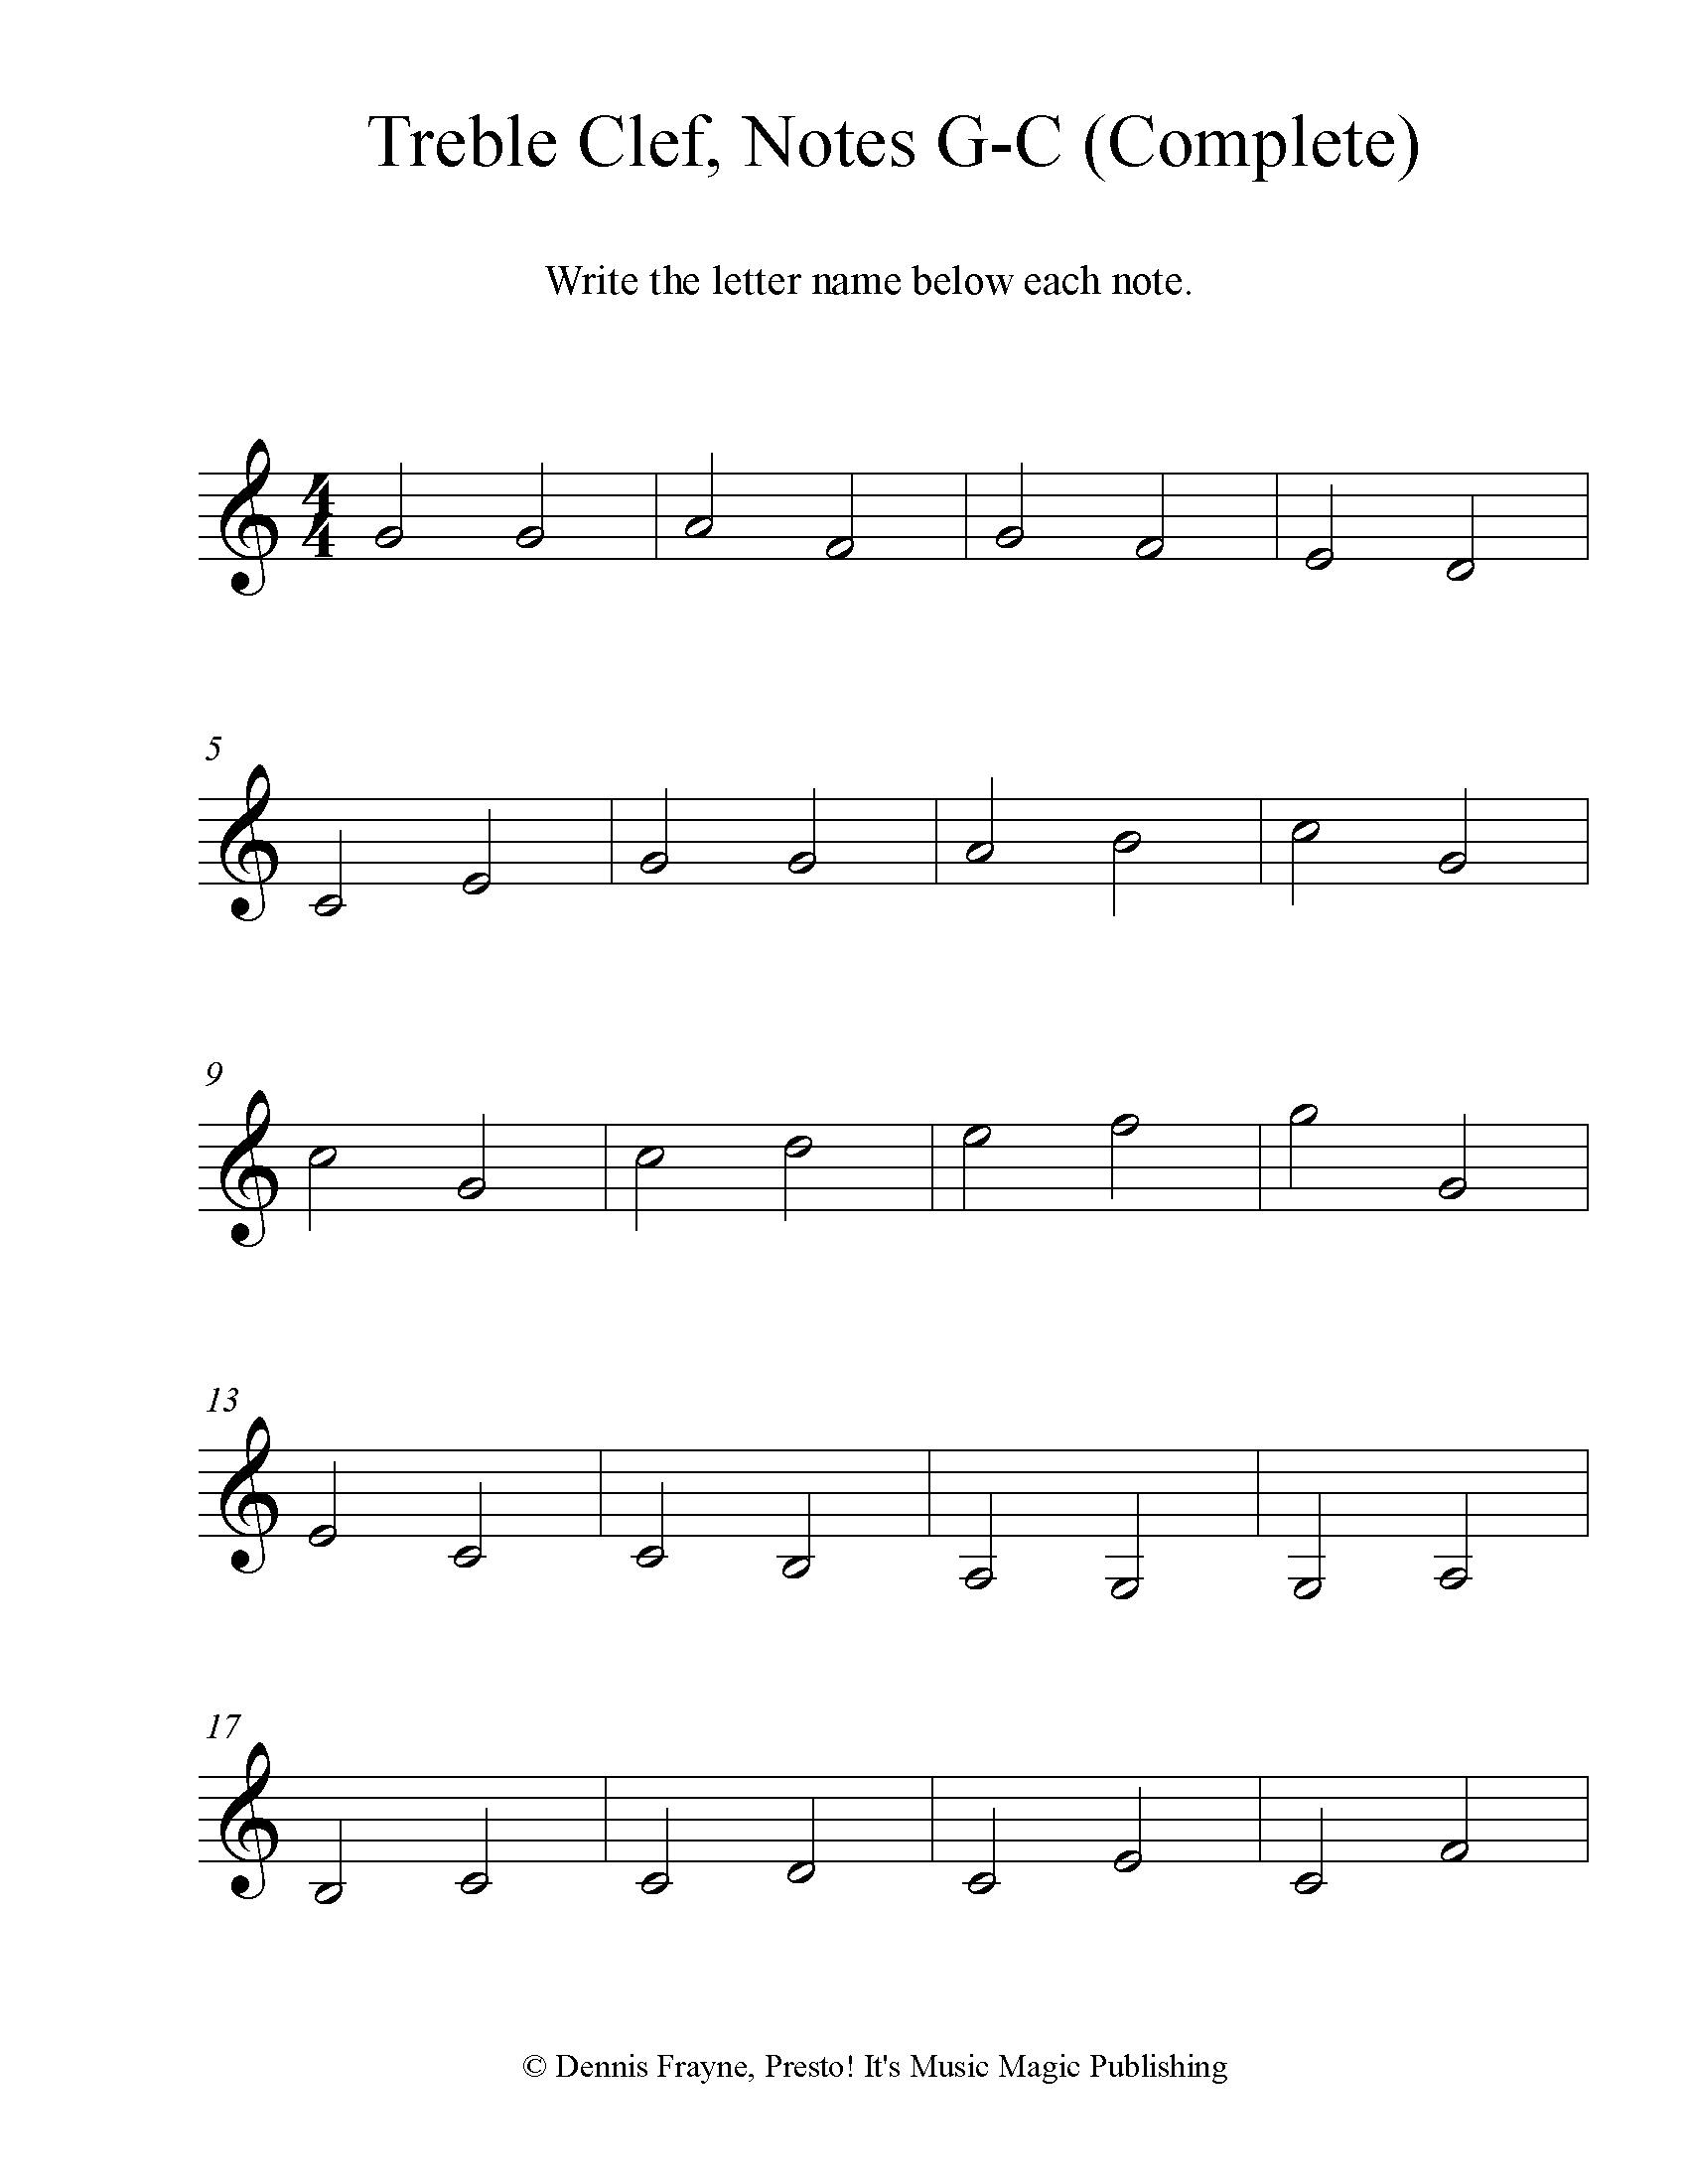 Treble Clef Note Identification Practice Worksheet, Level 5 4 pages